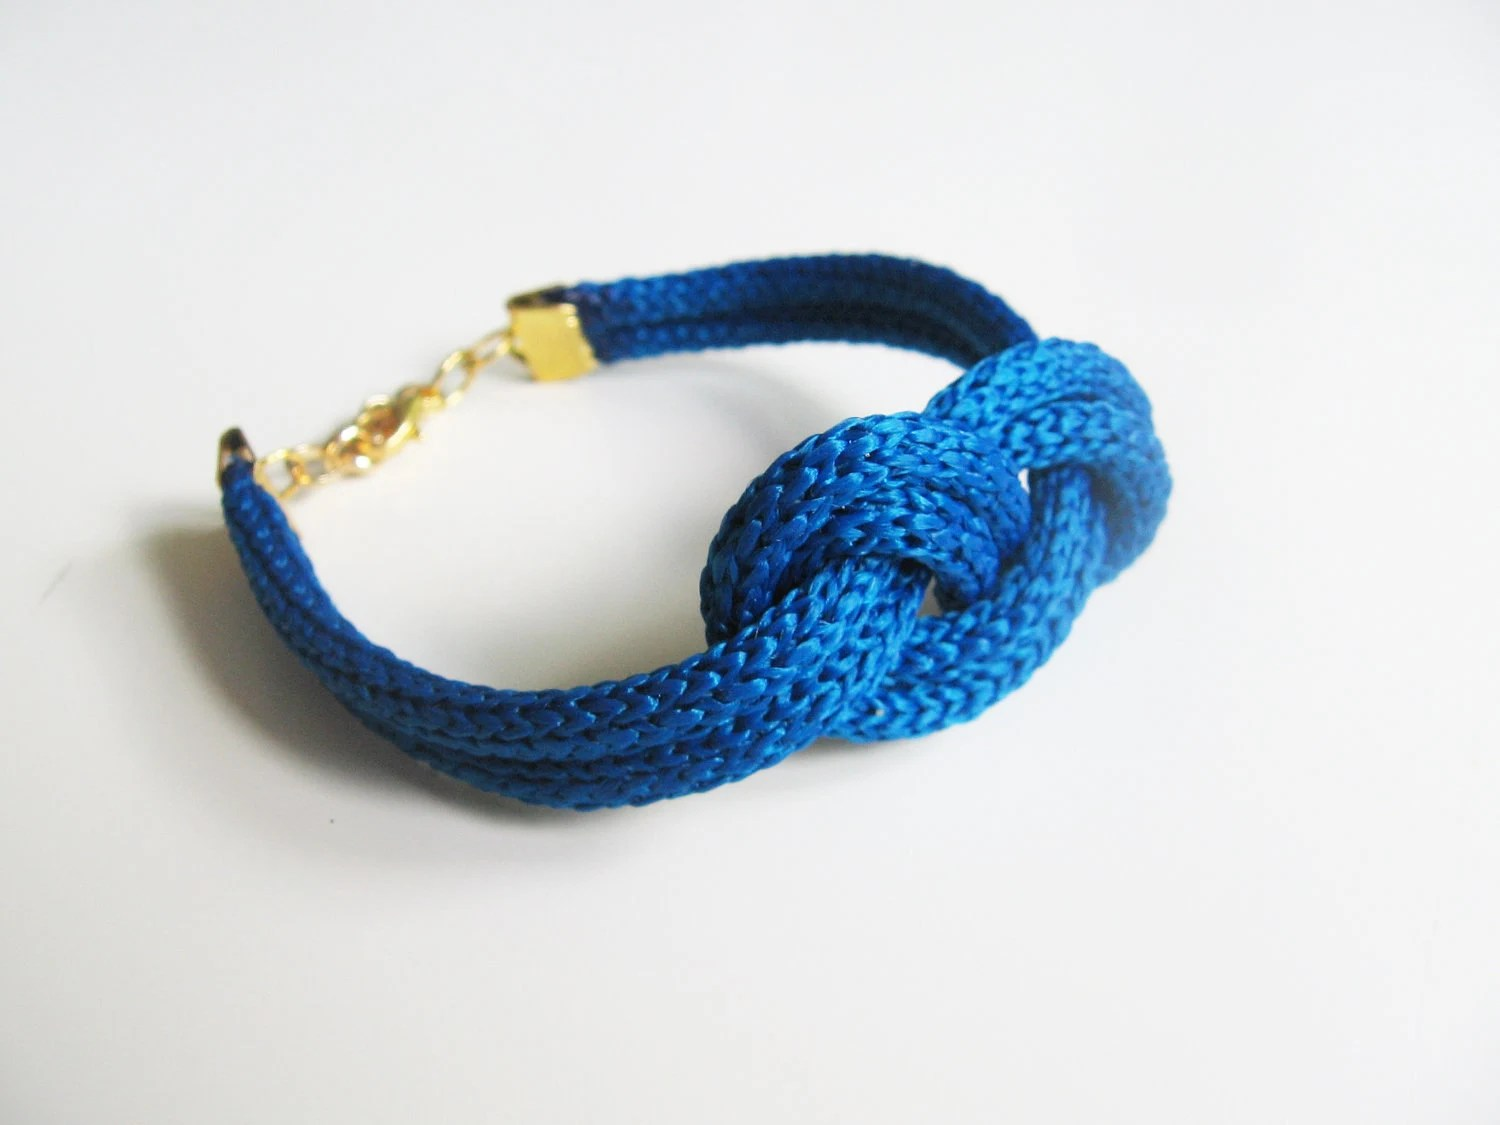 Blue navy rope bracelet- nautical cord sailor's knot bracelet with golden end caps - selenedream